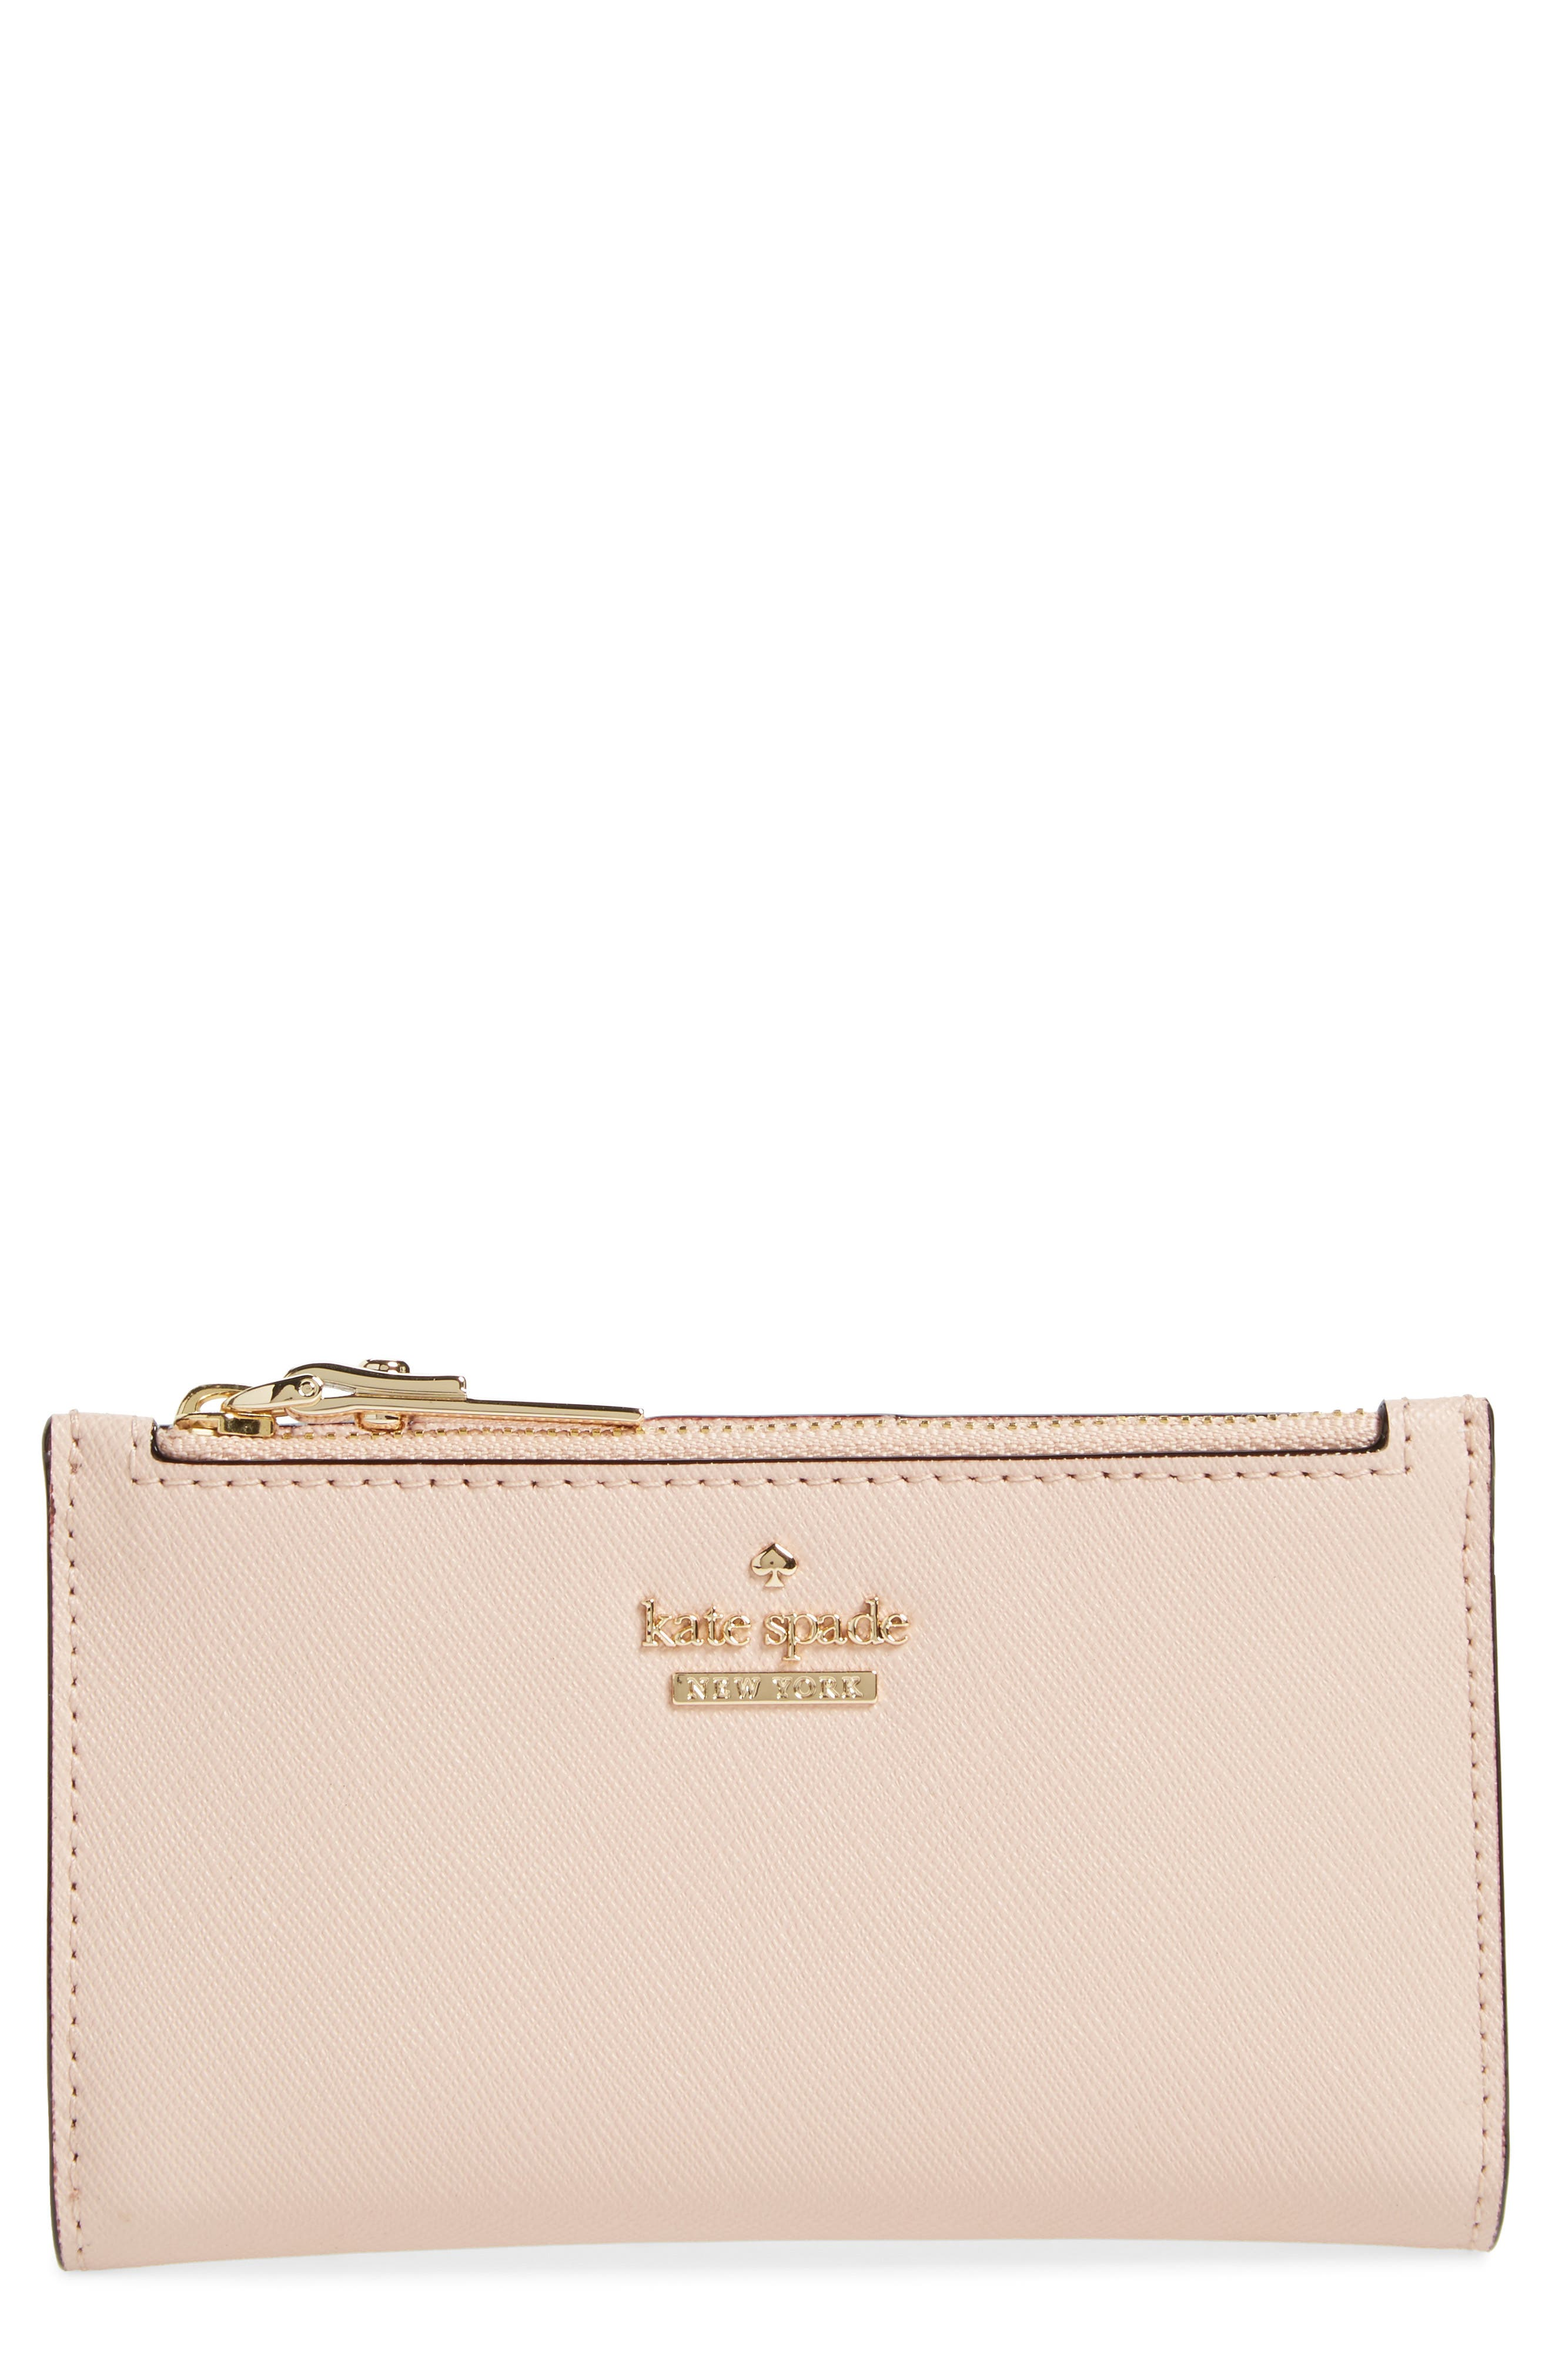 kate spade new york cameron street - mikey leather wallet